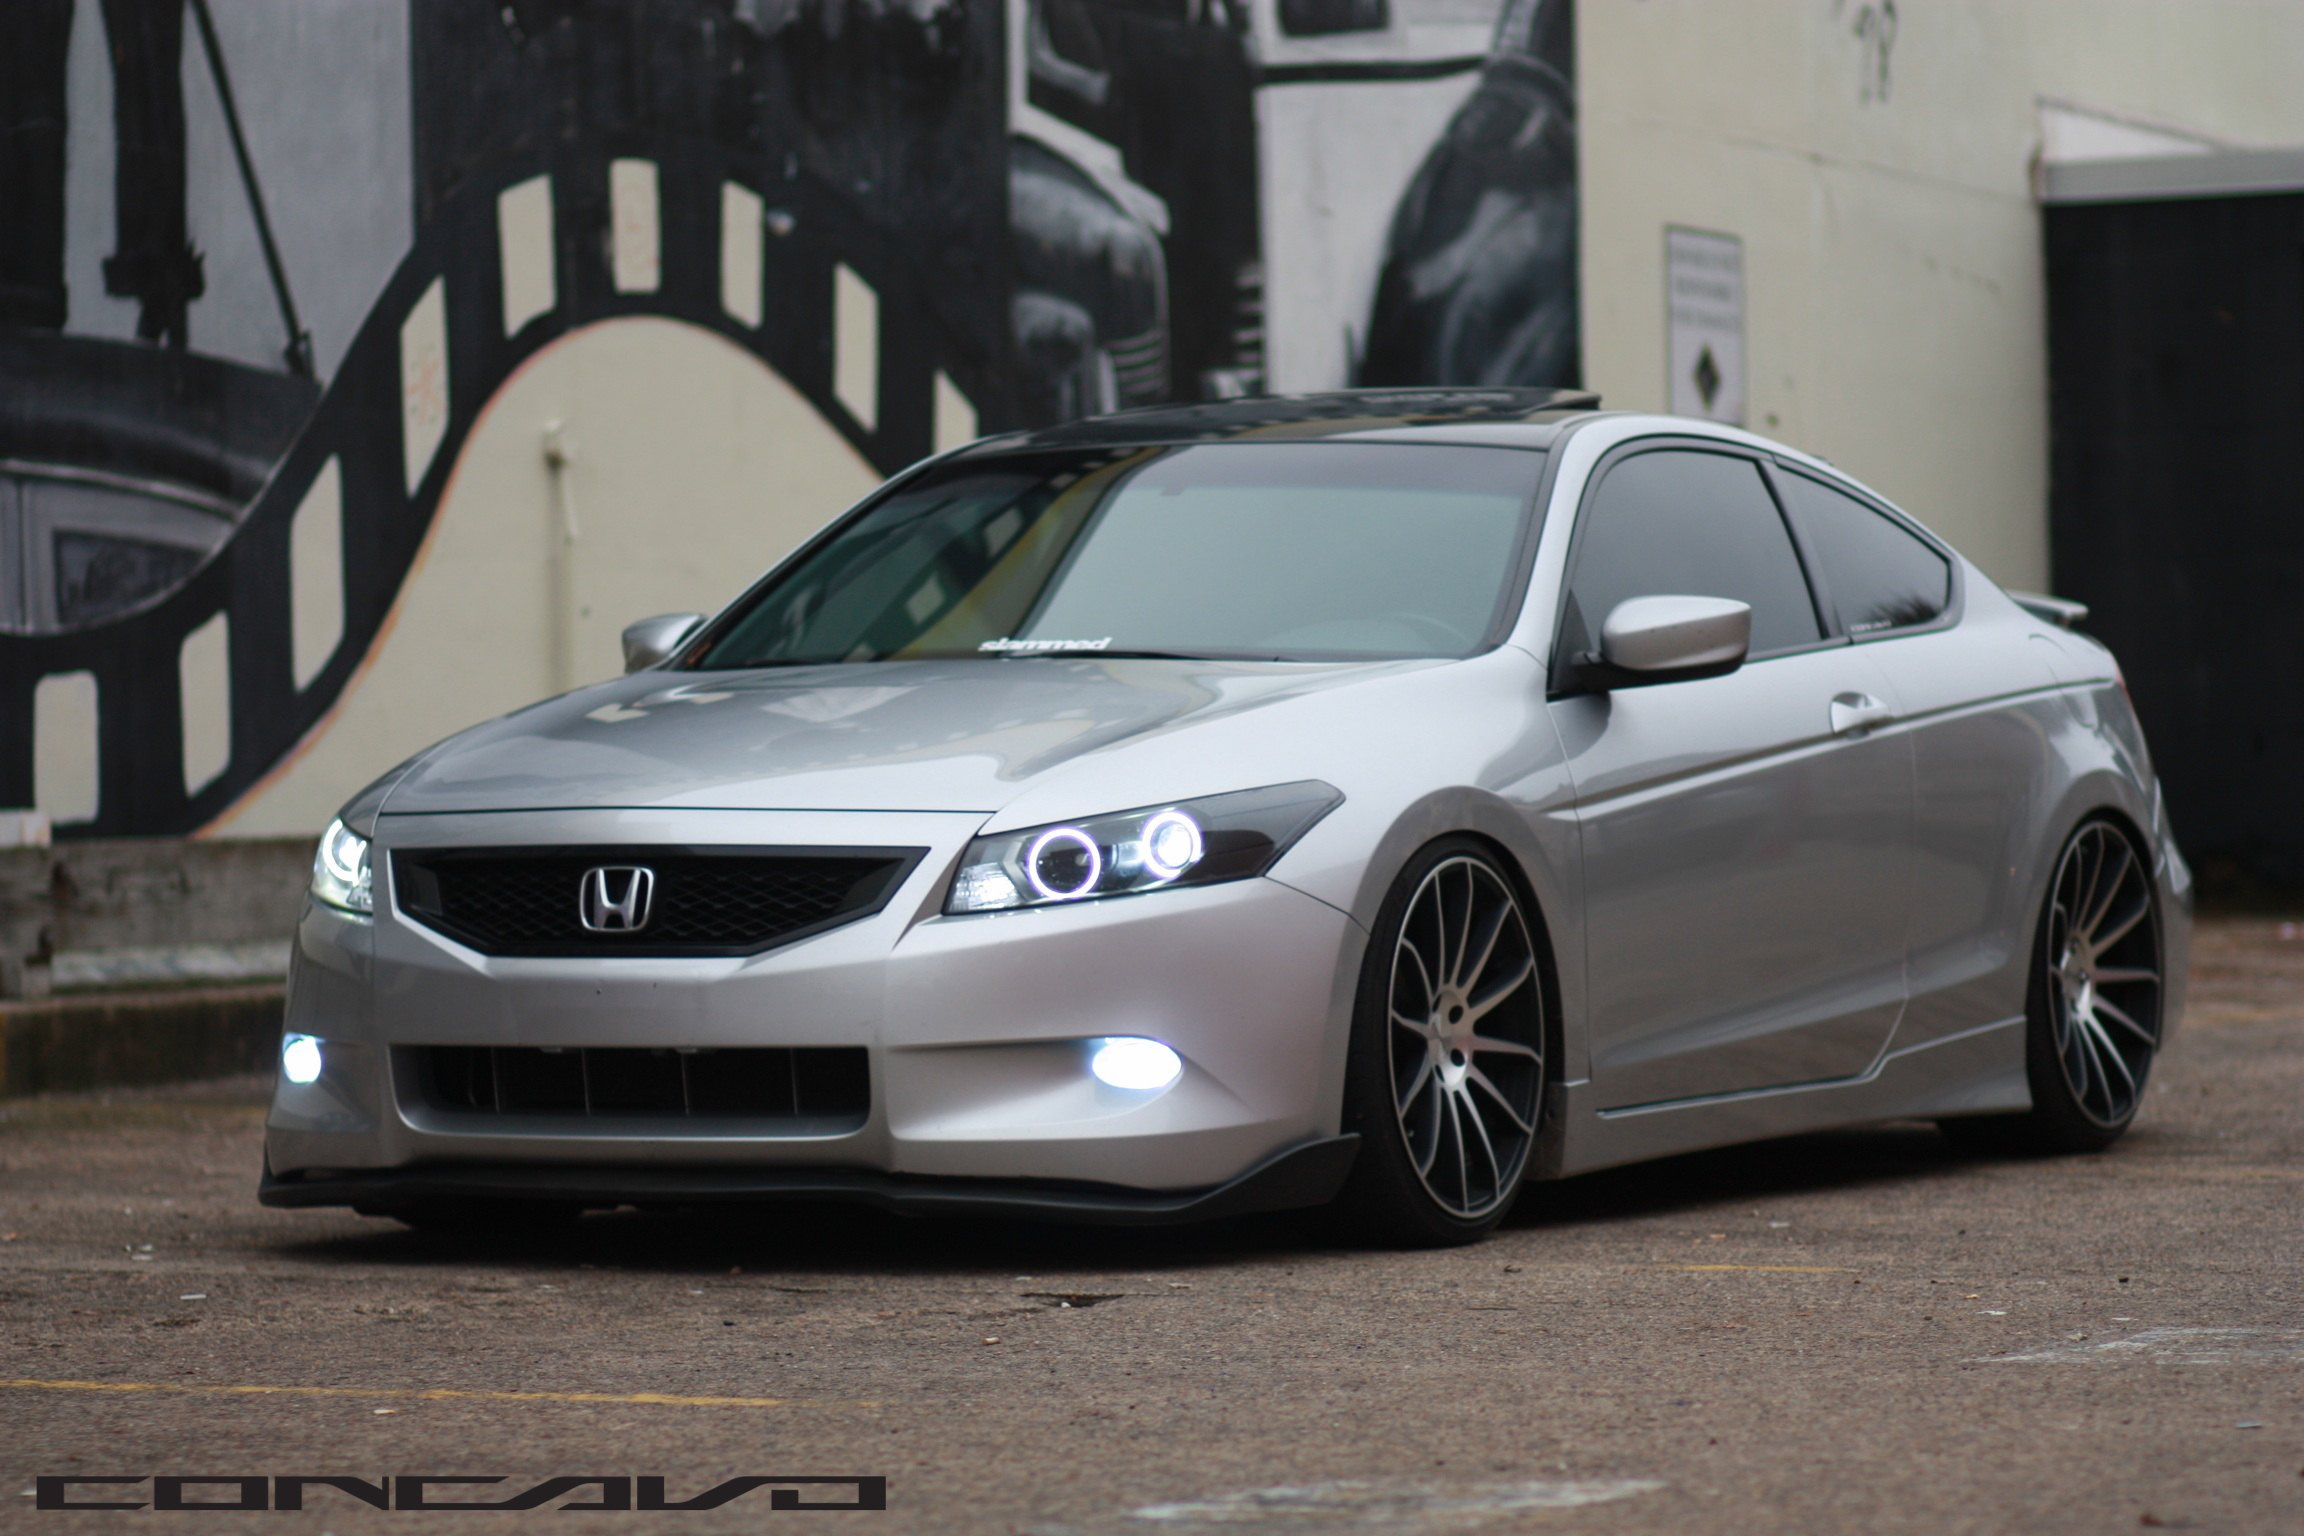 Stanced Honda Accord Coupe Boasting Custom Led Lights And Rims Carid Com Gallery